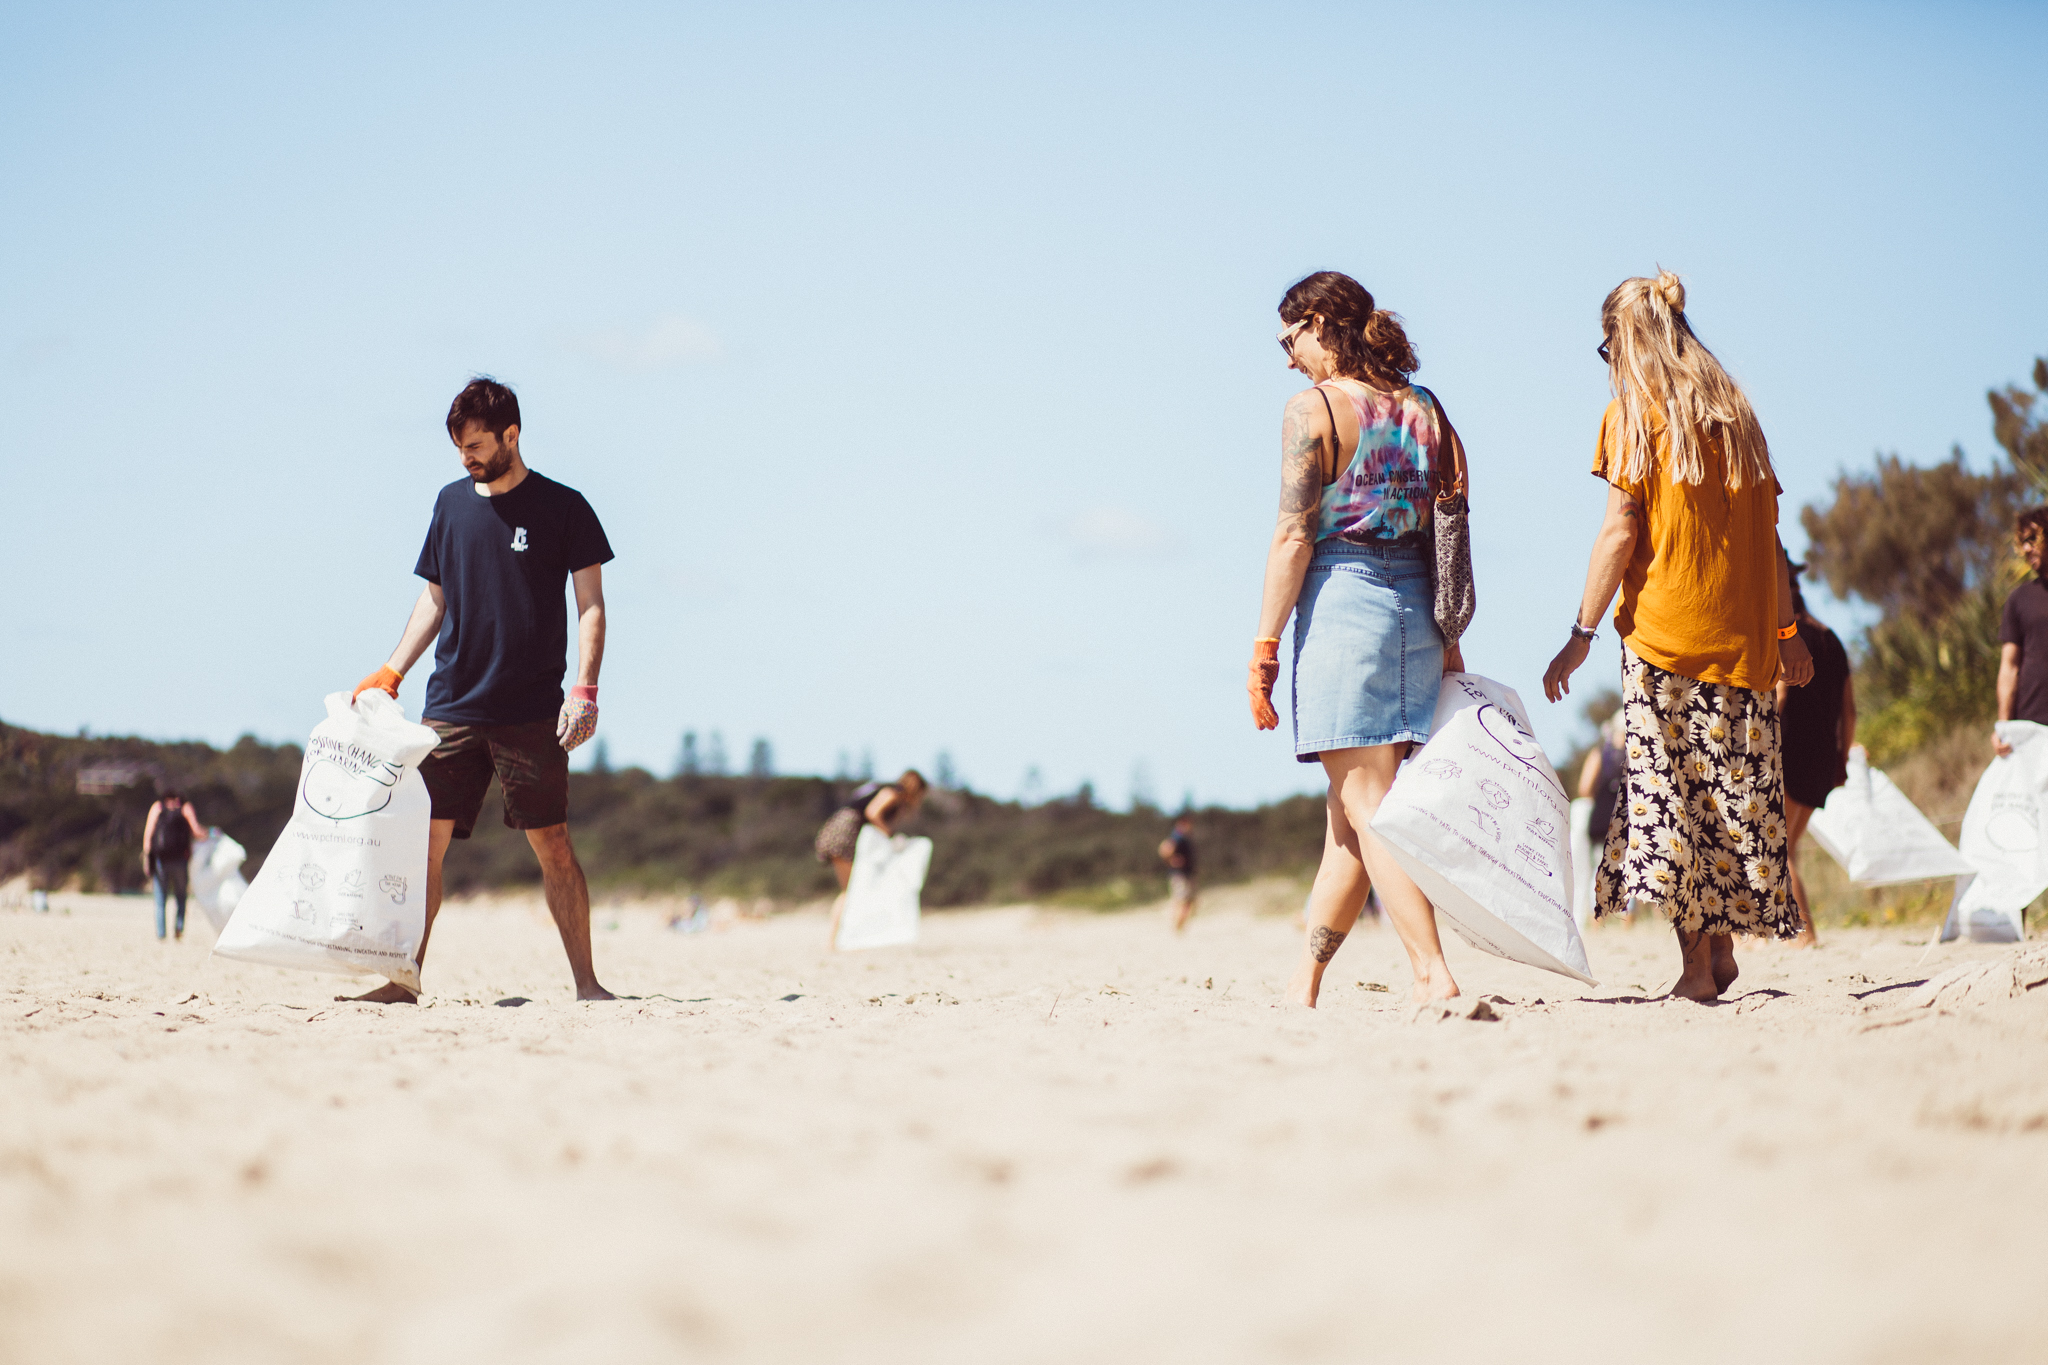 Byron Bay locals joined local non-profit and retail organisations to survey Main Beach, Byron Bay. Photography - Dane Scott Creative.